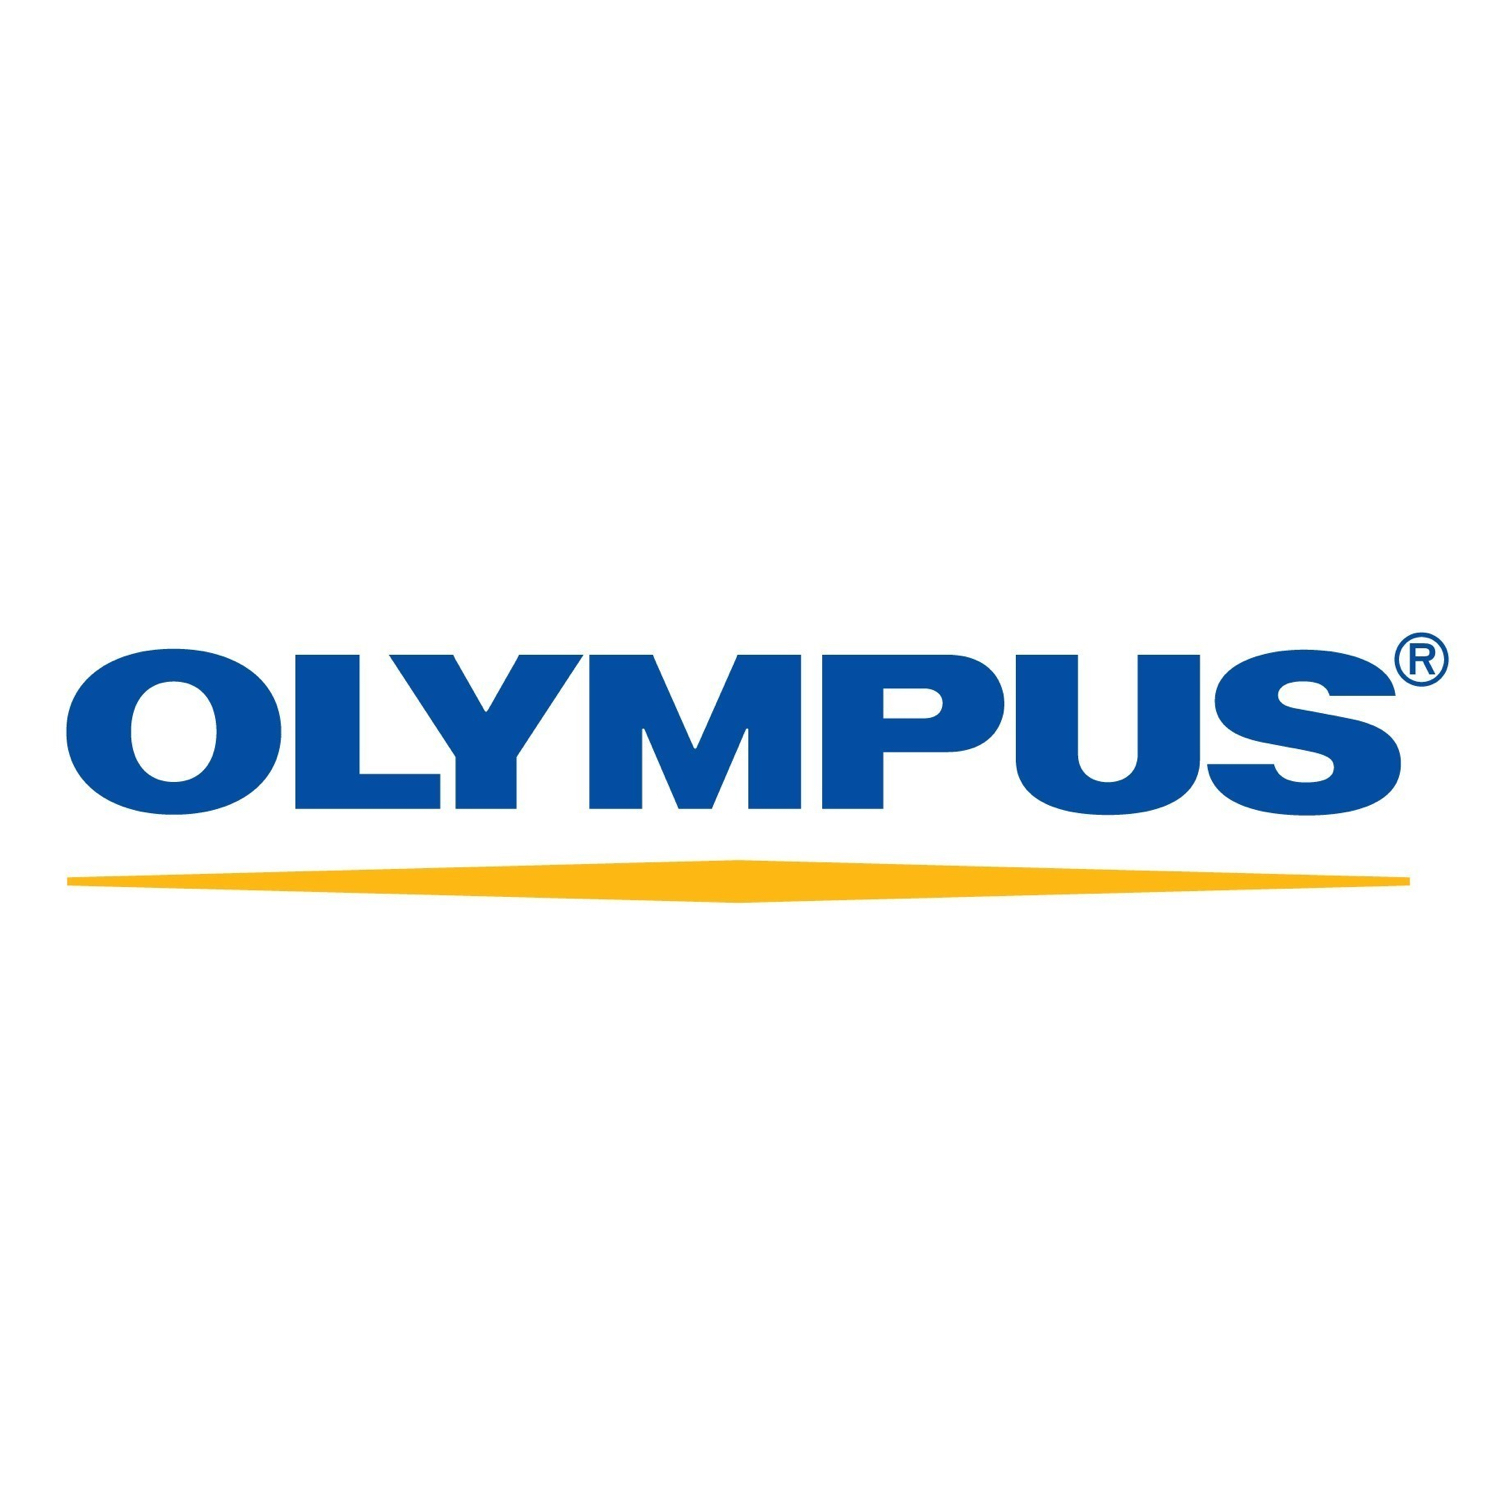 Olympus Travel contest